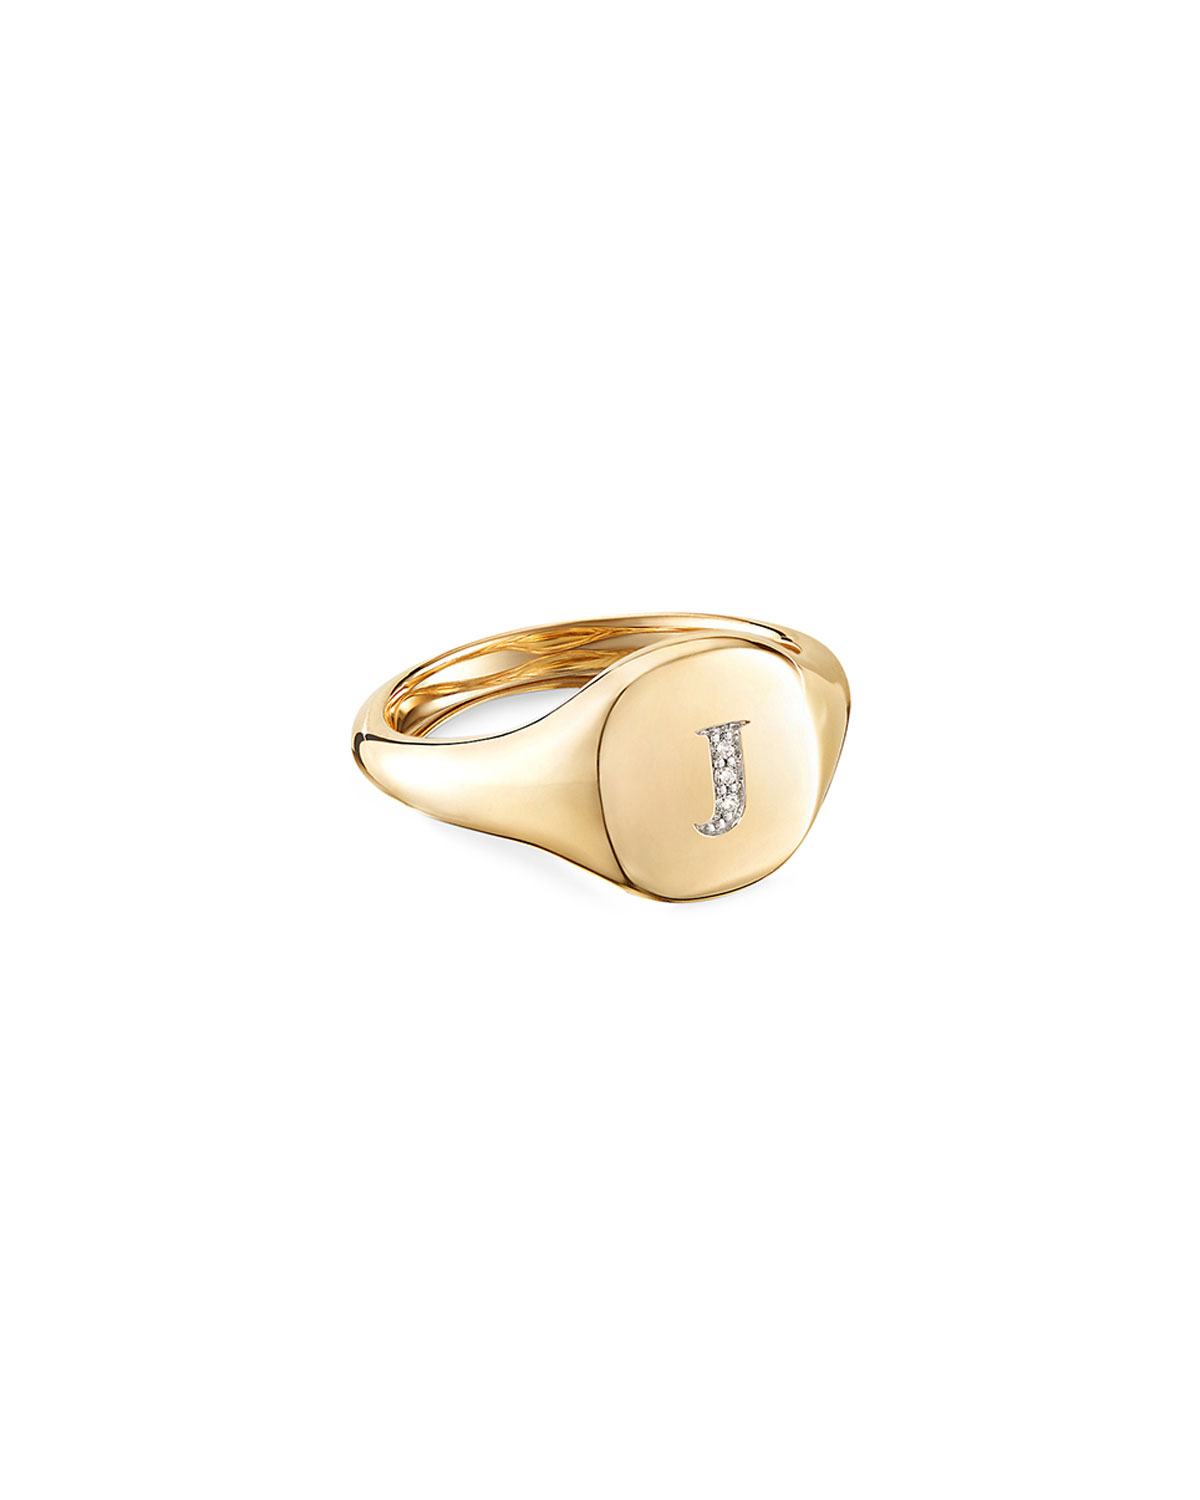 David Yurman Mini DY Initial J Pinky Ring in 18K Yellow Gold with Diamonds, Size 5